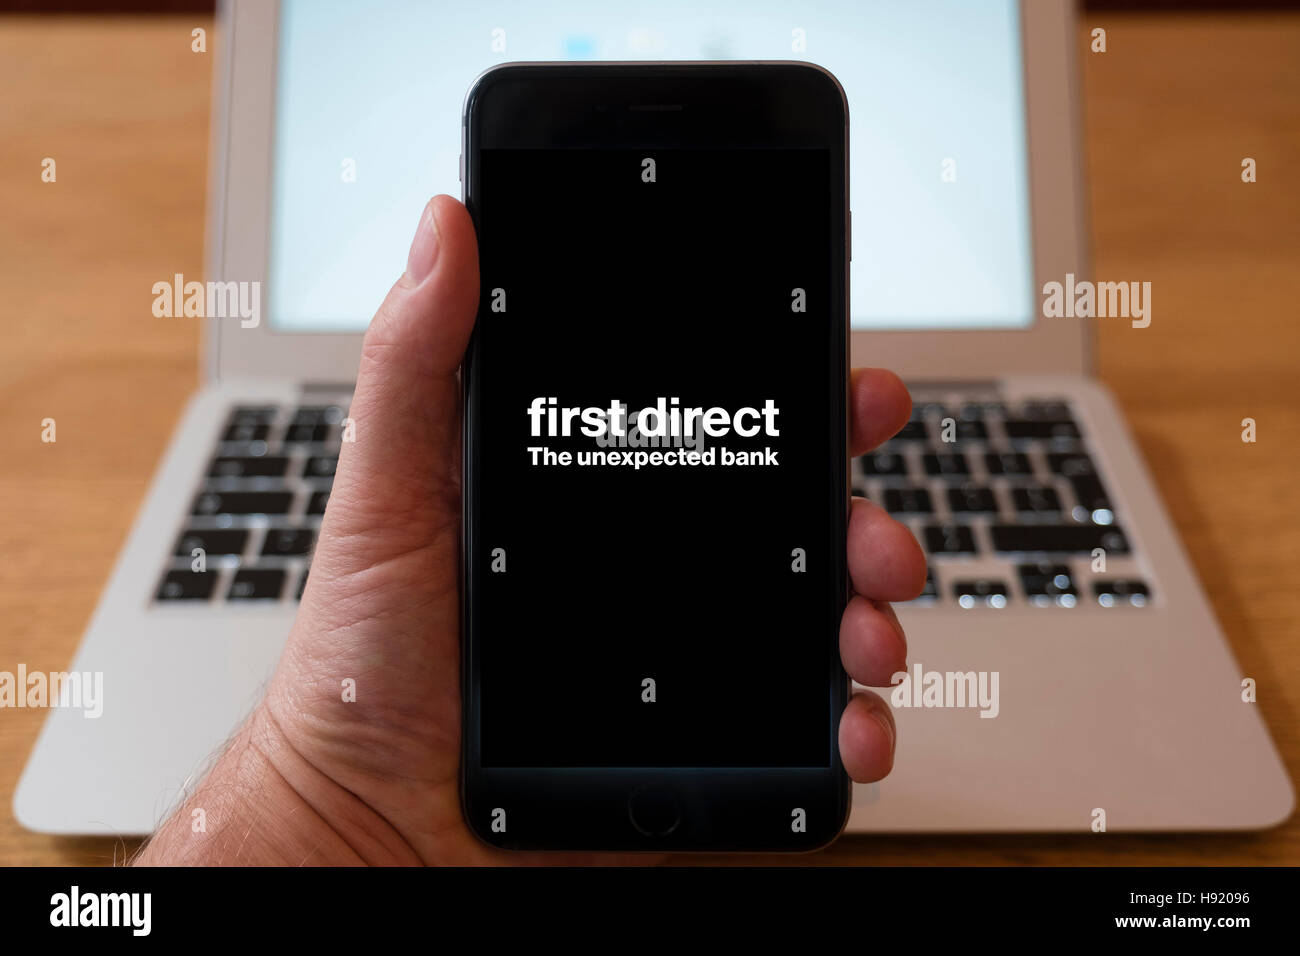 Using iPhone smart phone to display website logo of First Direct Bank Stock Photo